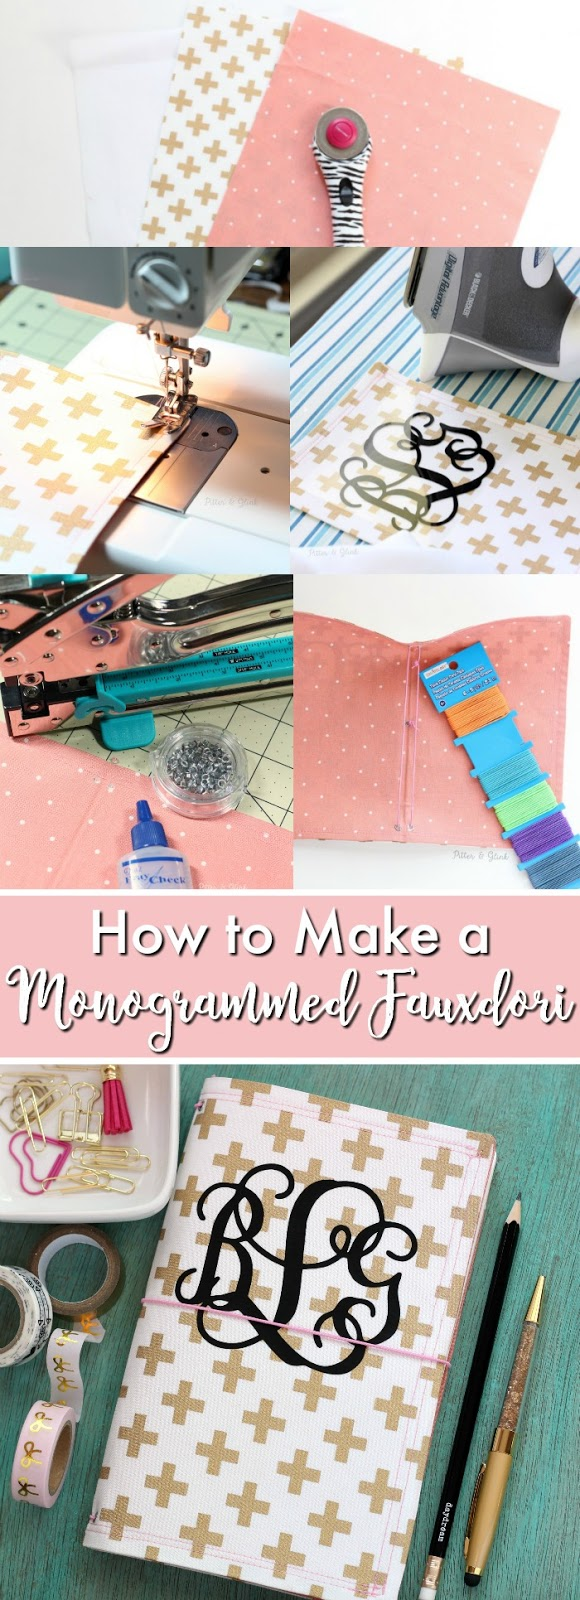 How to Make a Monogrammed Fauxdori